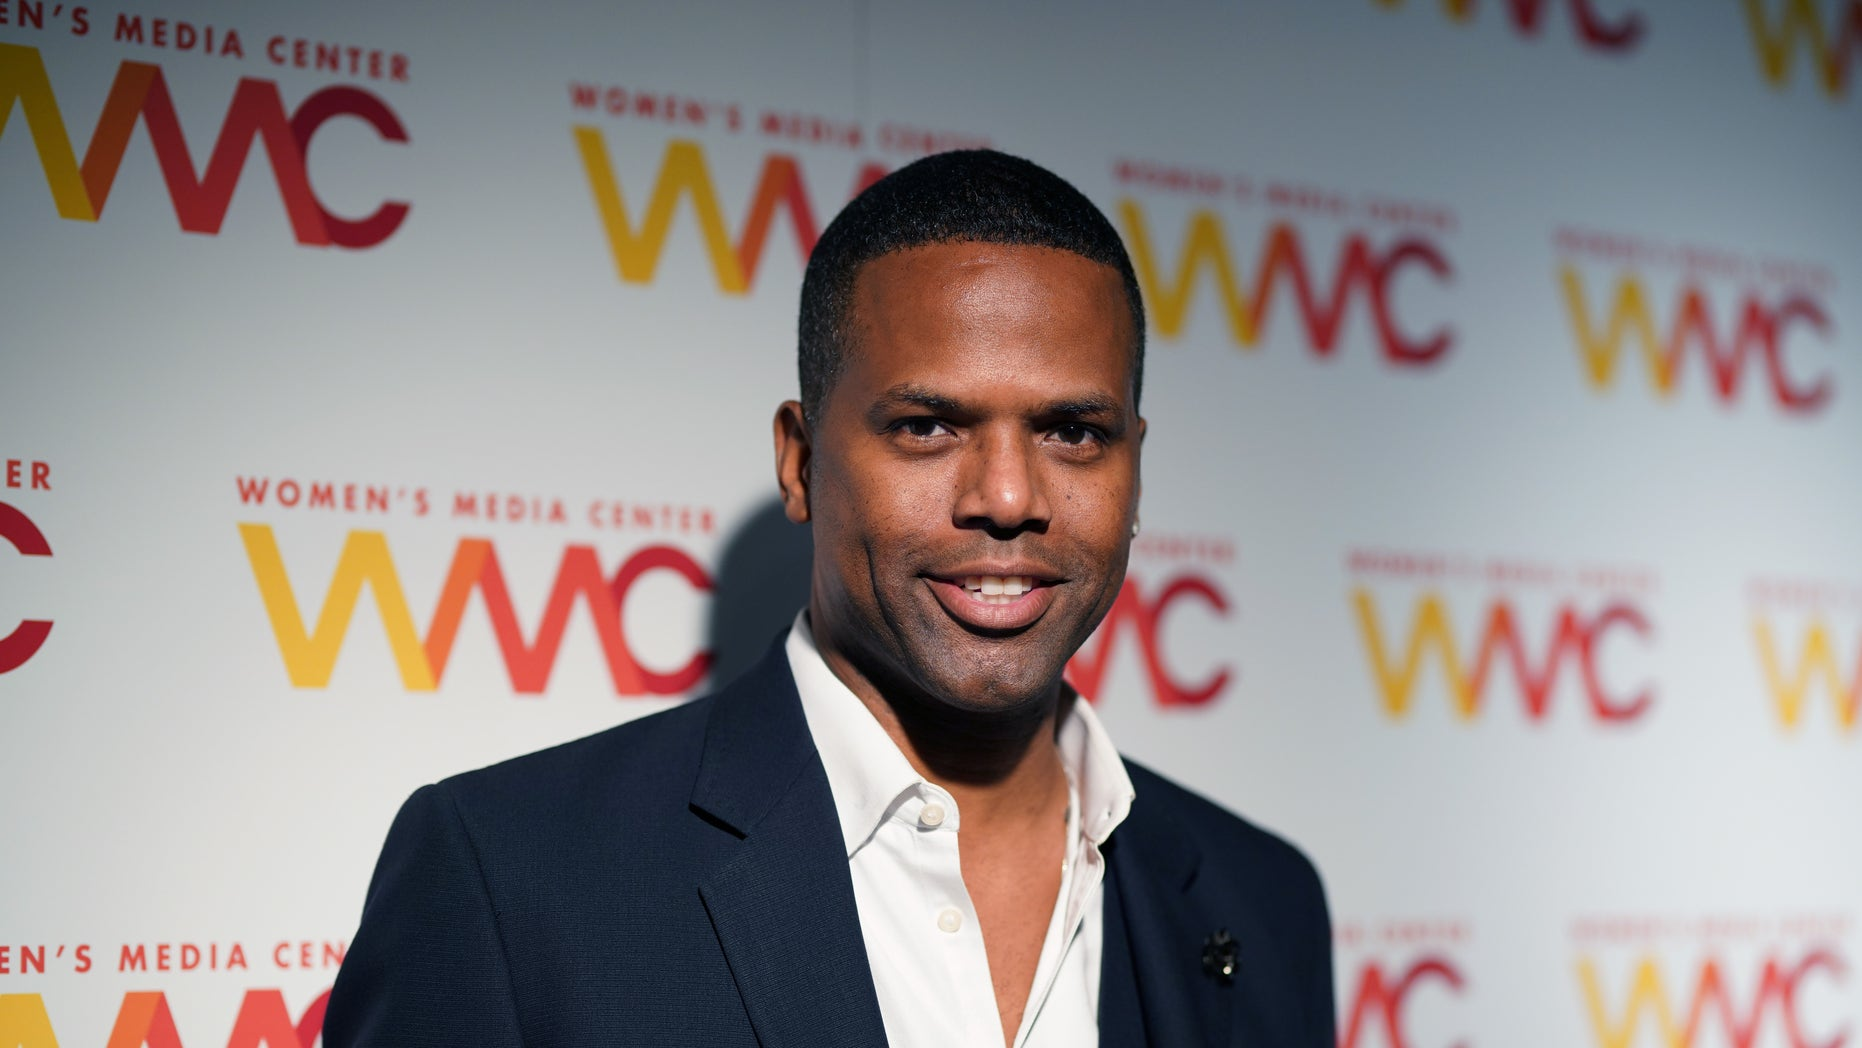 A.J. Calloway attends the 2018 Women's Media Awards in New York on Nov. 1. (Photo by Jemal Countess/Getty Images for Women's Media Center)